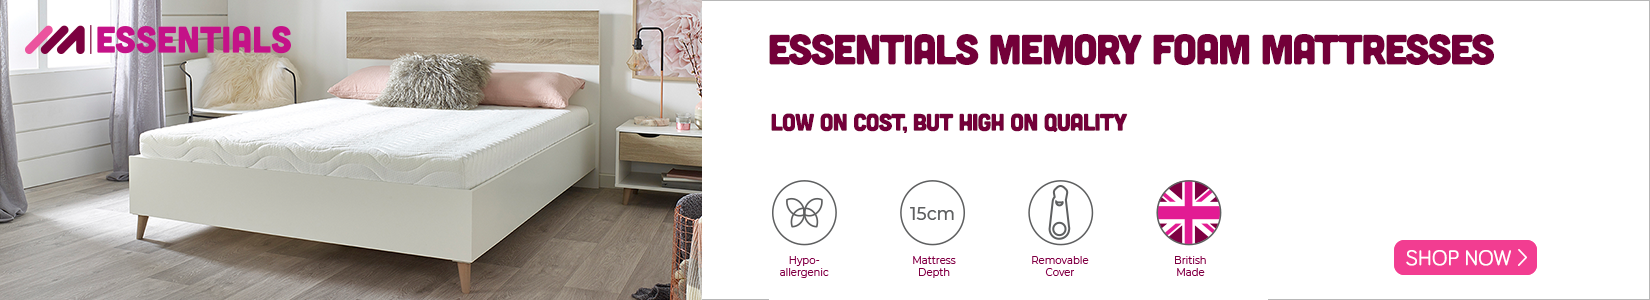 Essentials mattress banner